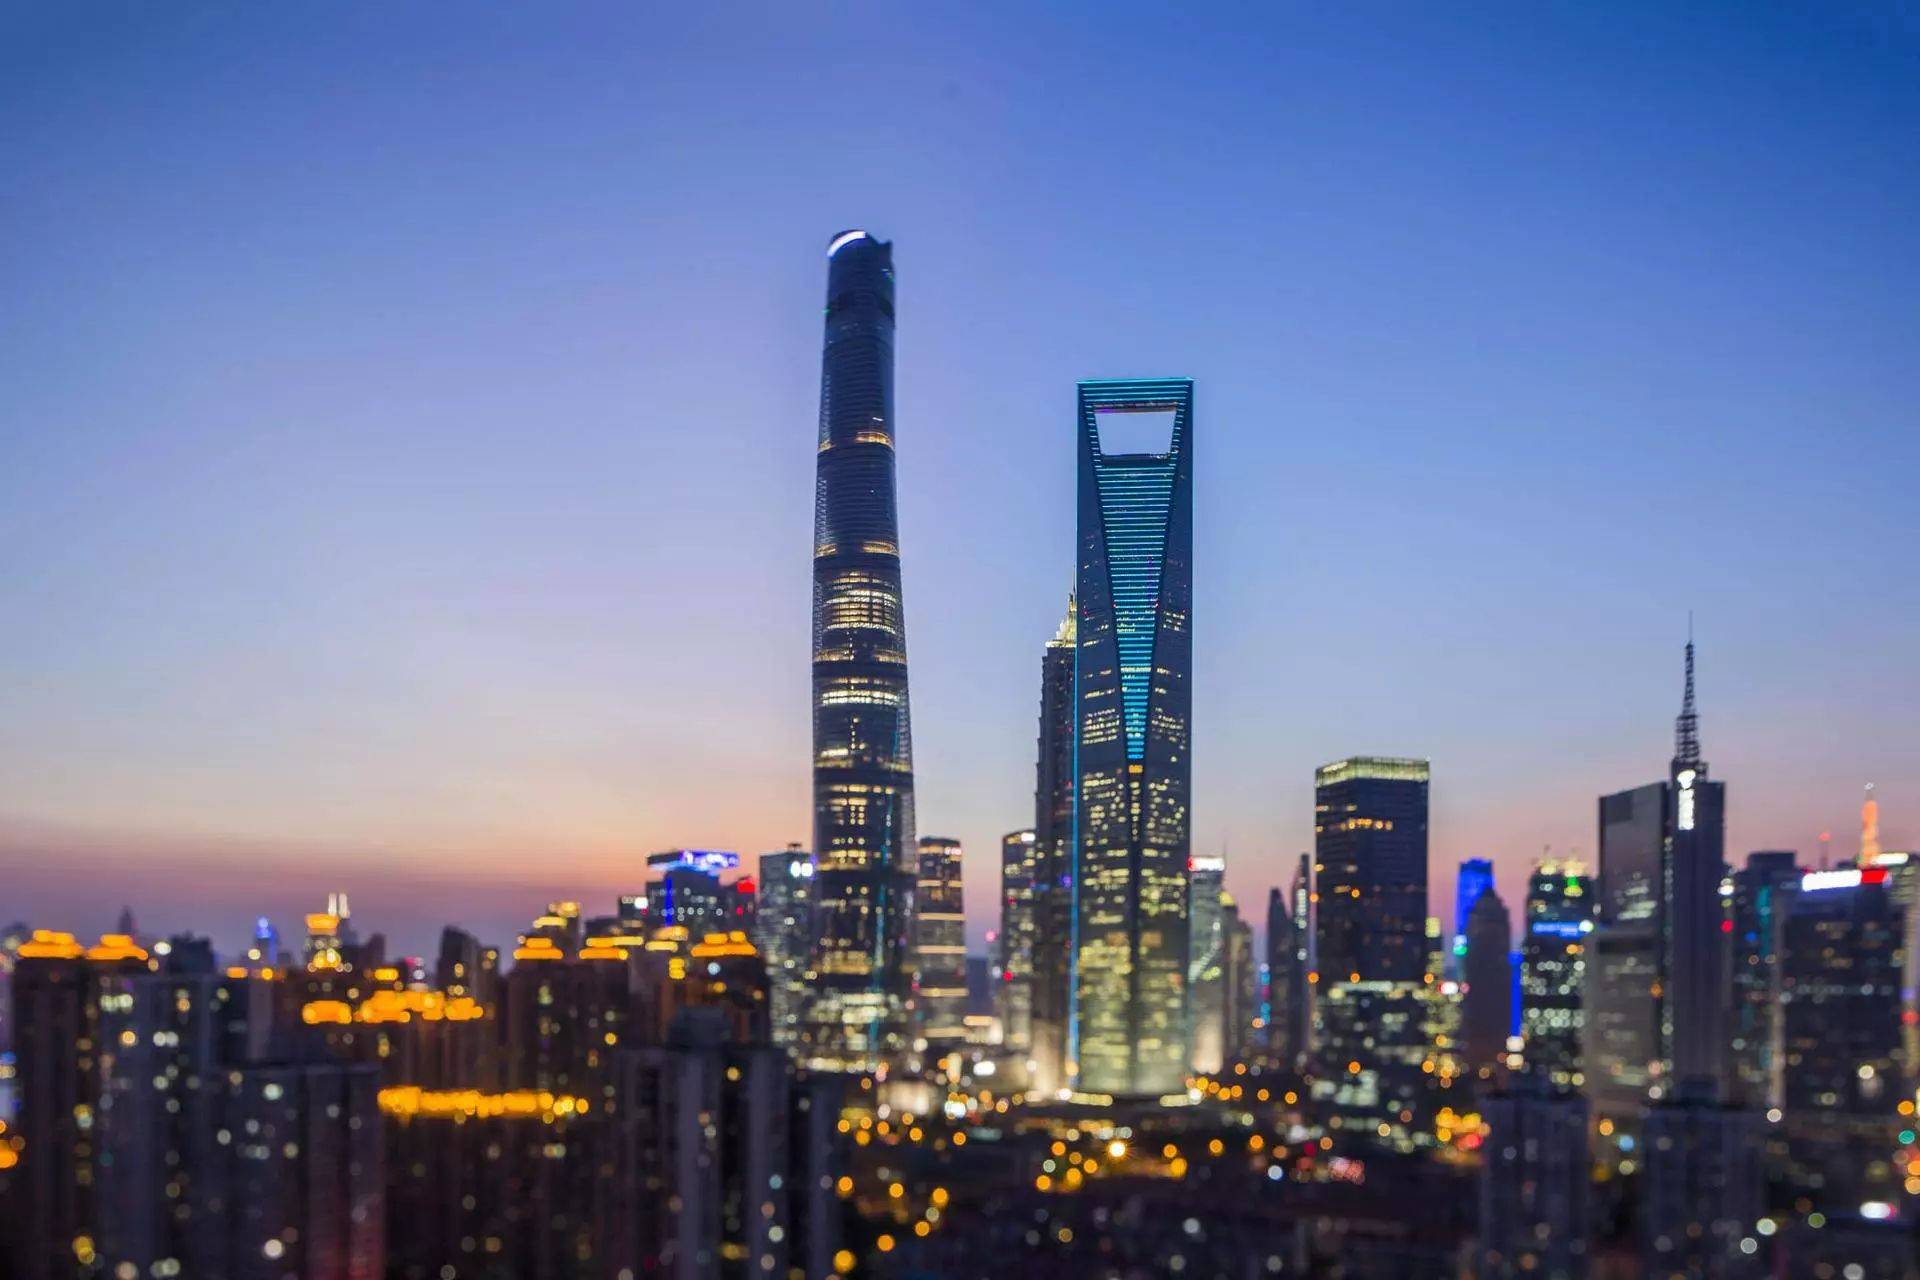 Buy Shanghai World Financial Center Observatory Attractions Tickets